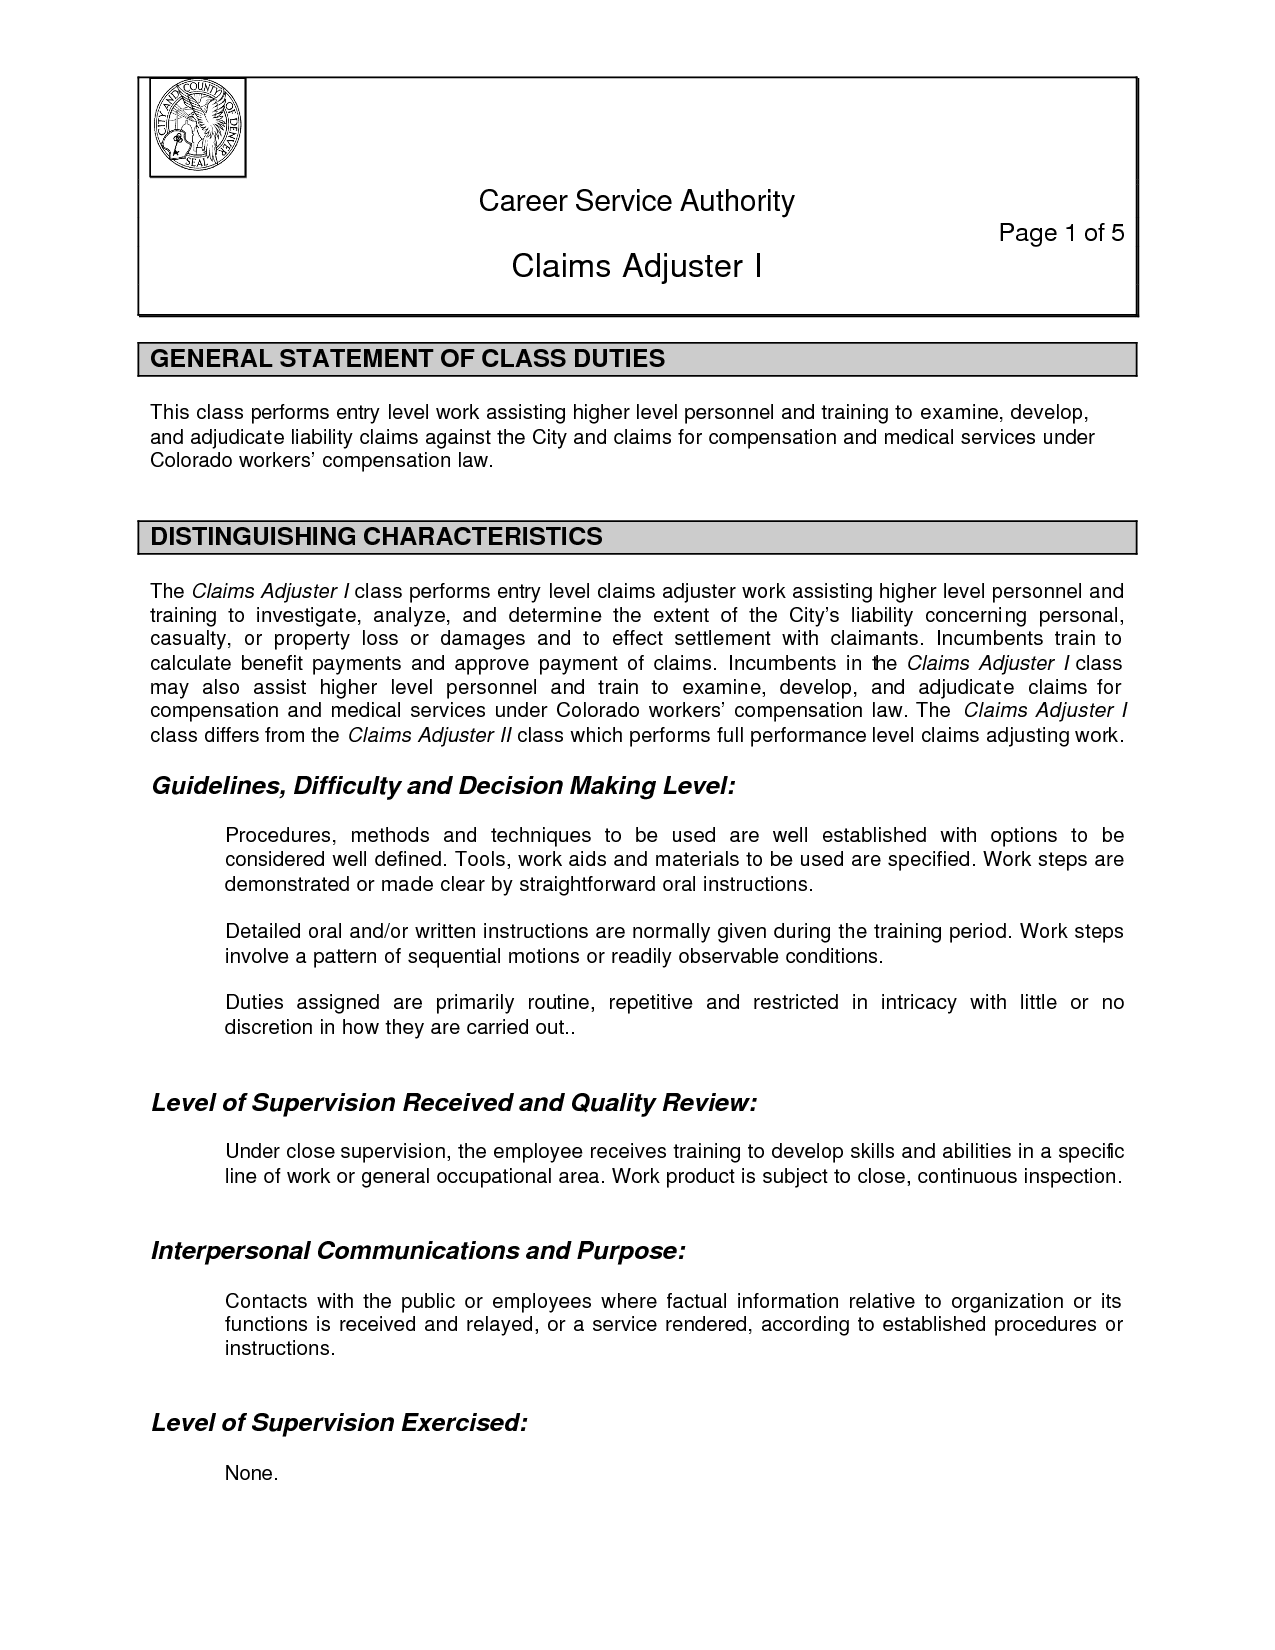 cover letter for claims adjuster trainee  cover letter examples also claims adjuster quotes quotesgram